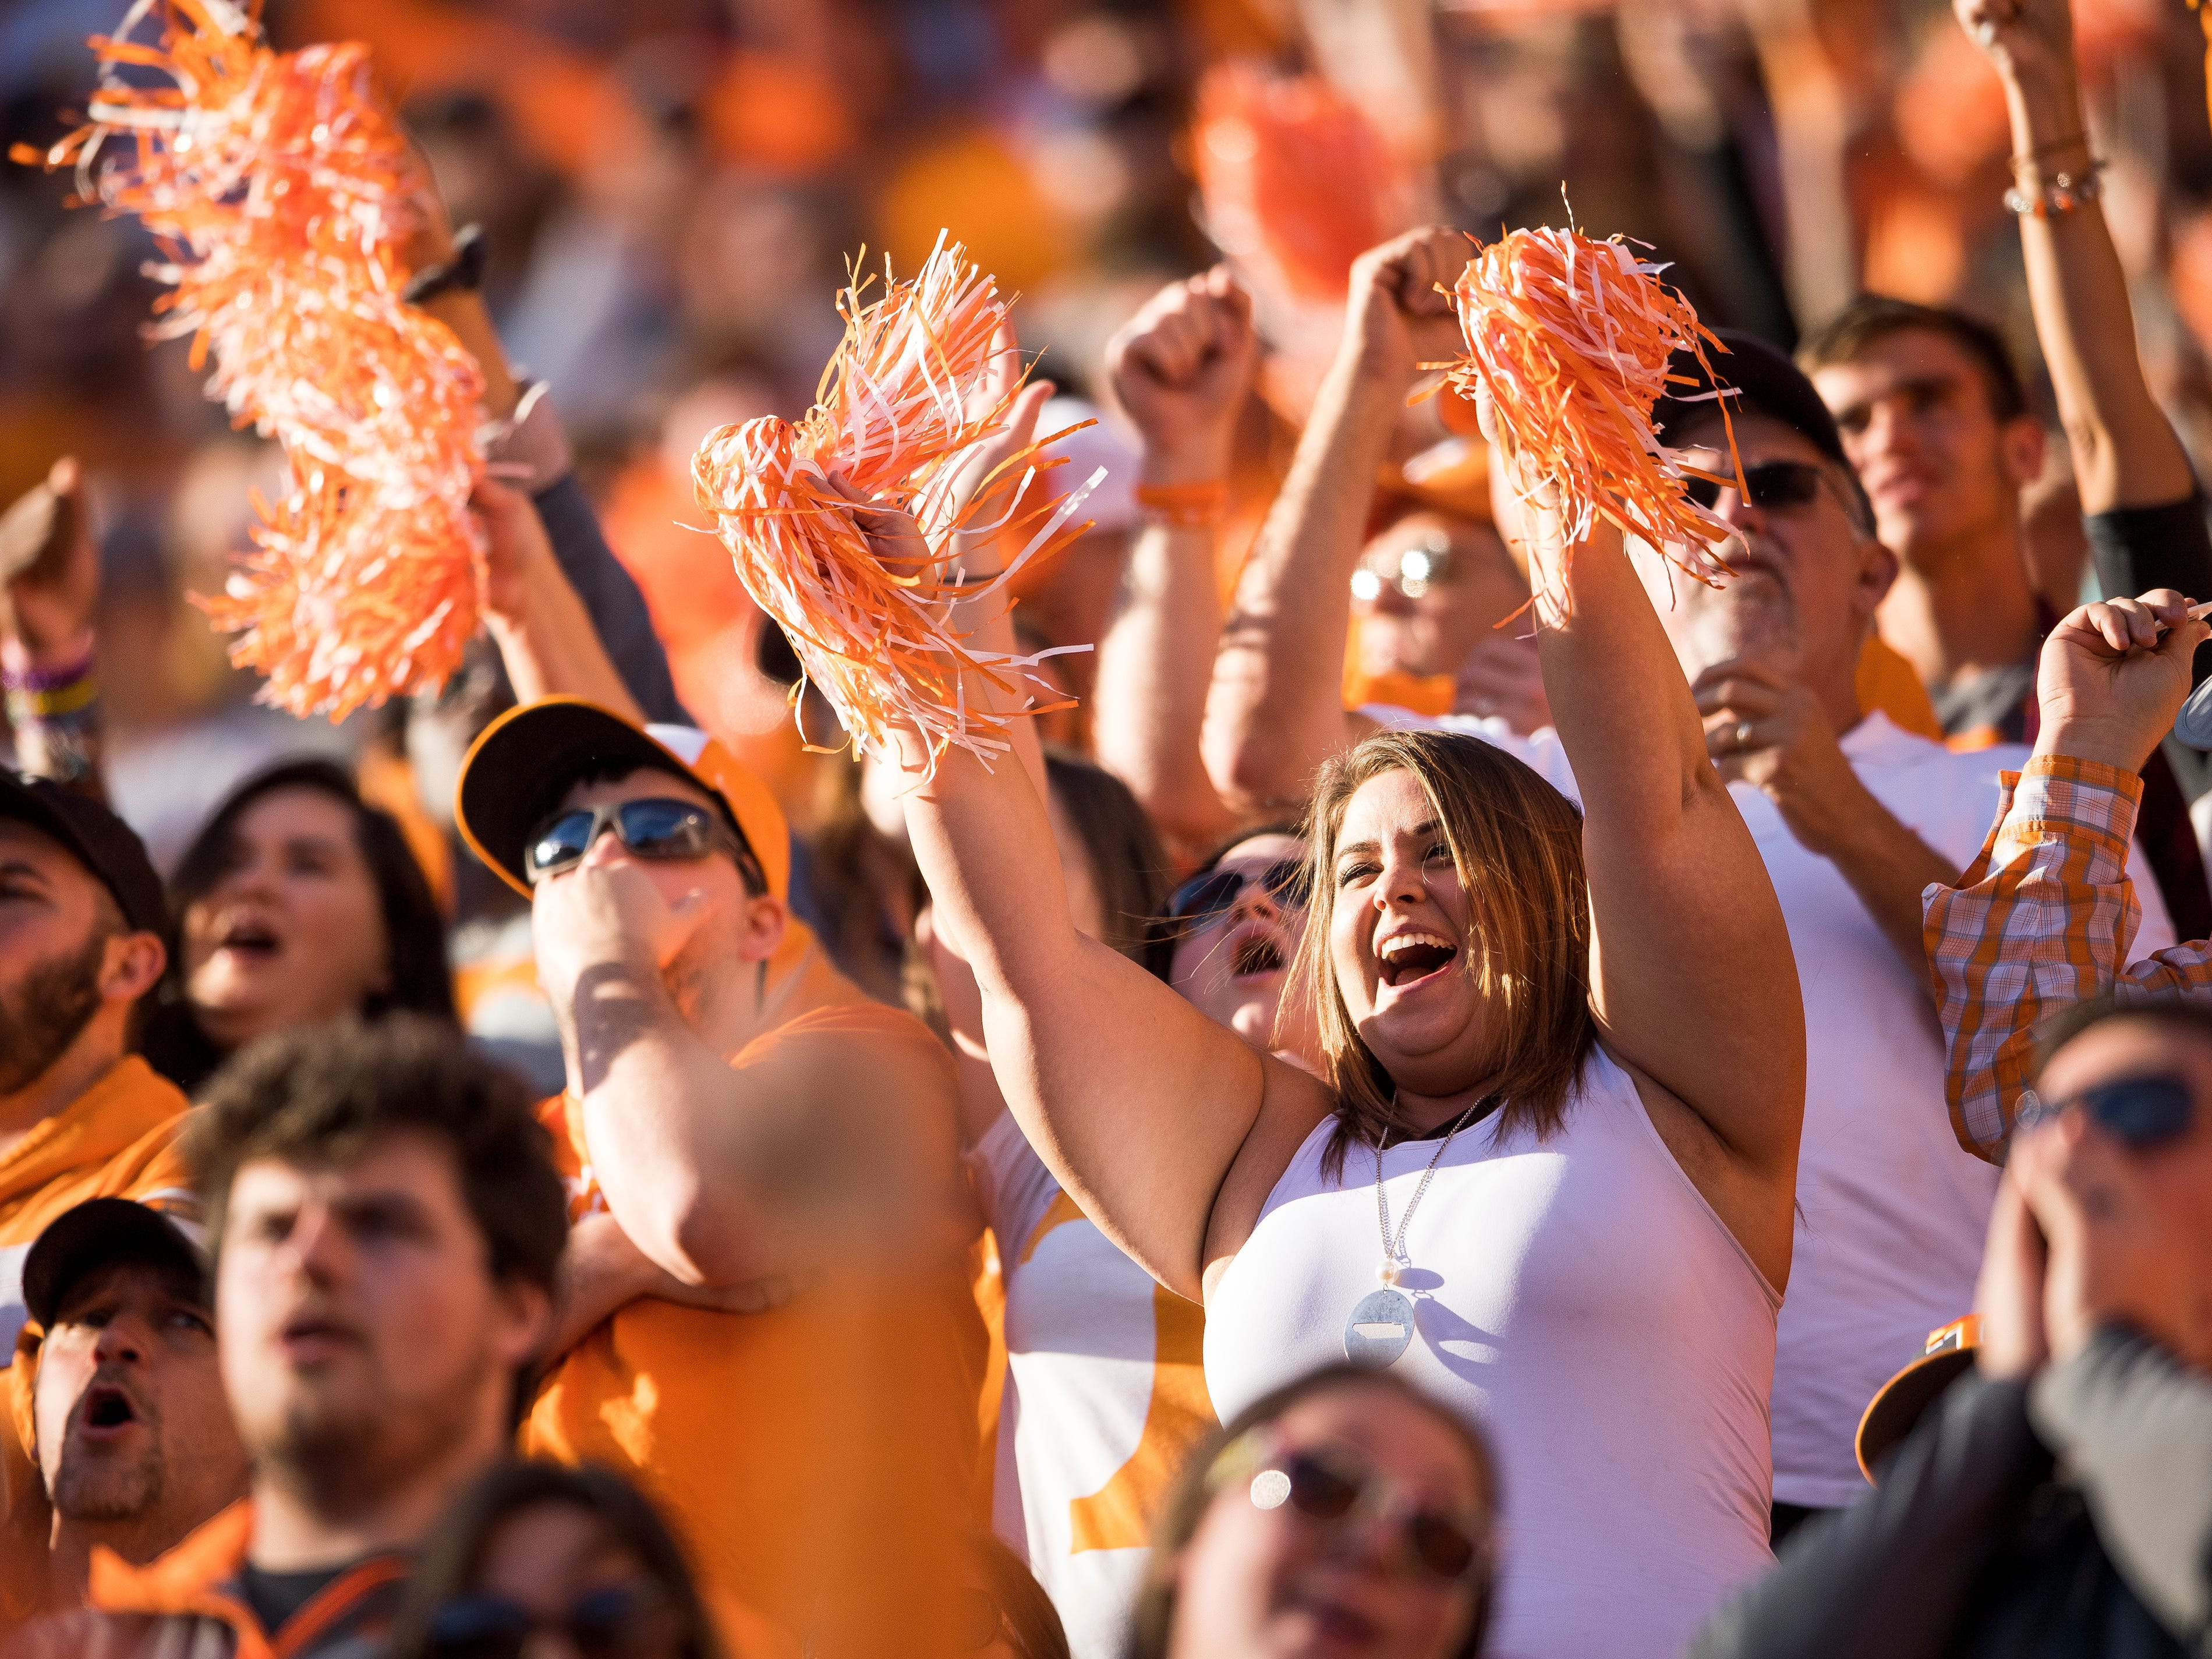 Fans cheer after Tennessee scores its first touchdown during the Tennessee Volunteers' game against Alabama in Neyland Stadium on Saturday, October 20, 2018.